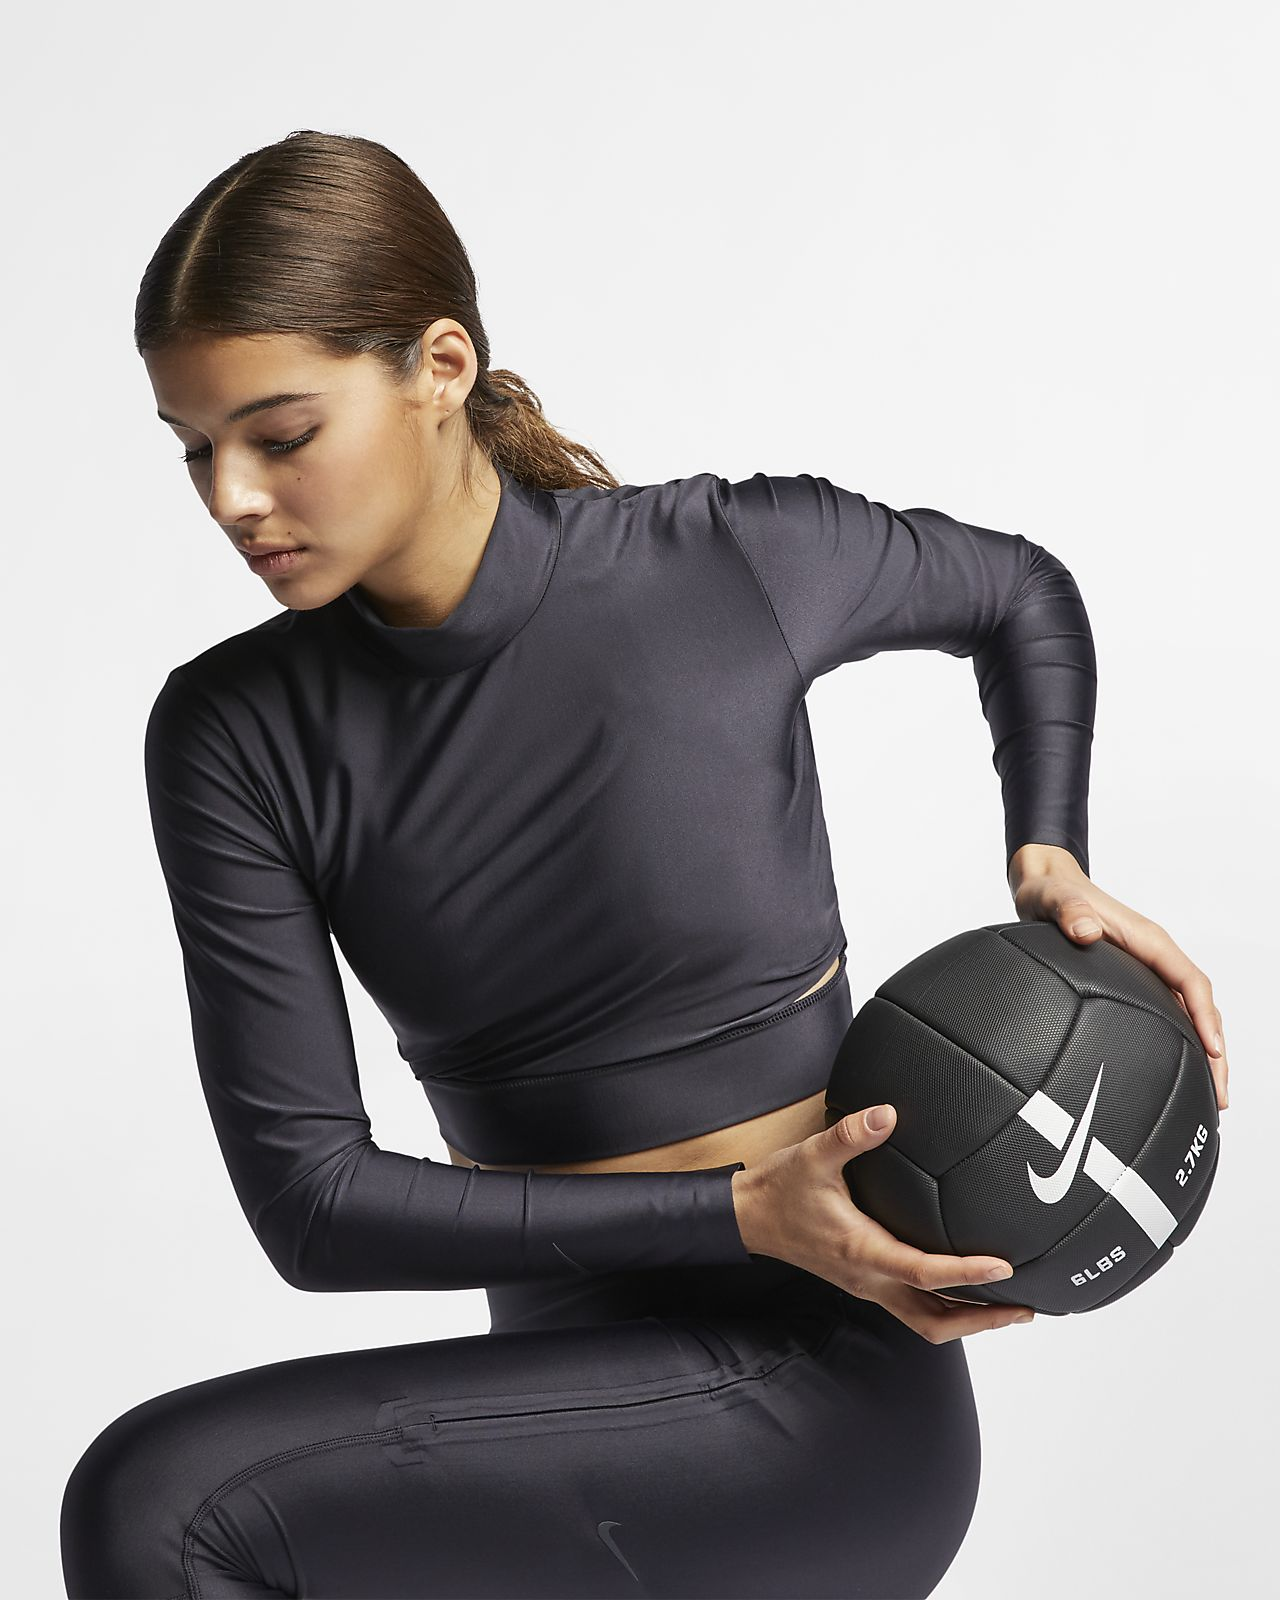 Nike Women's Long-Sleeve Training Top